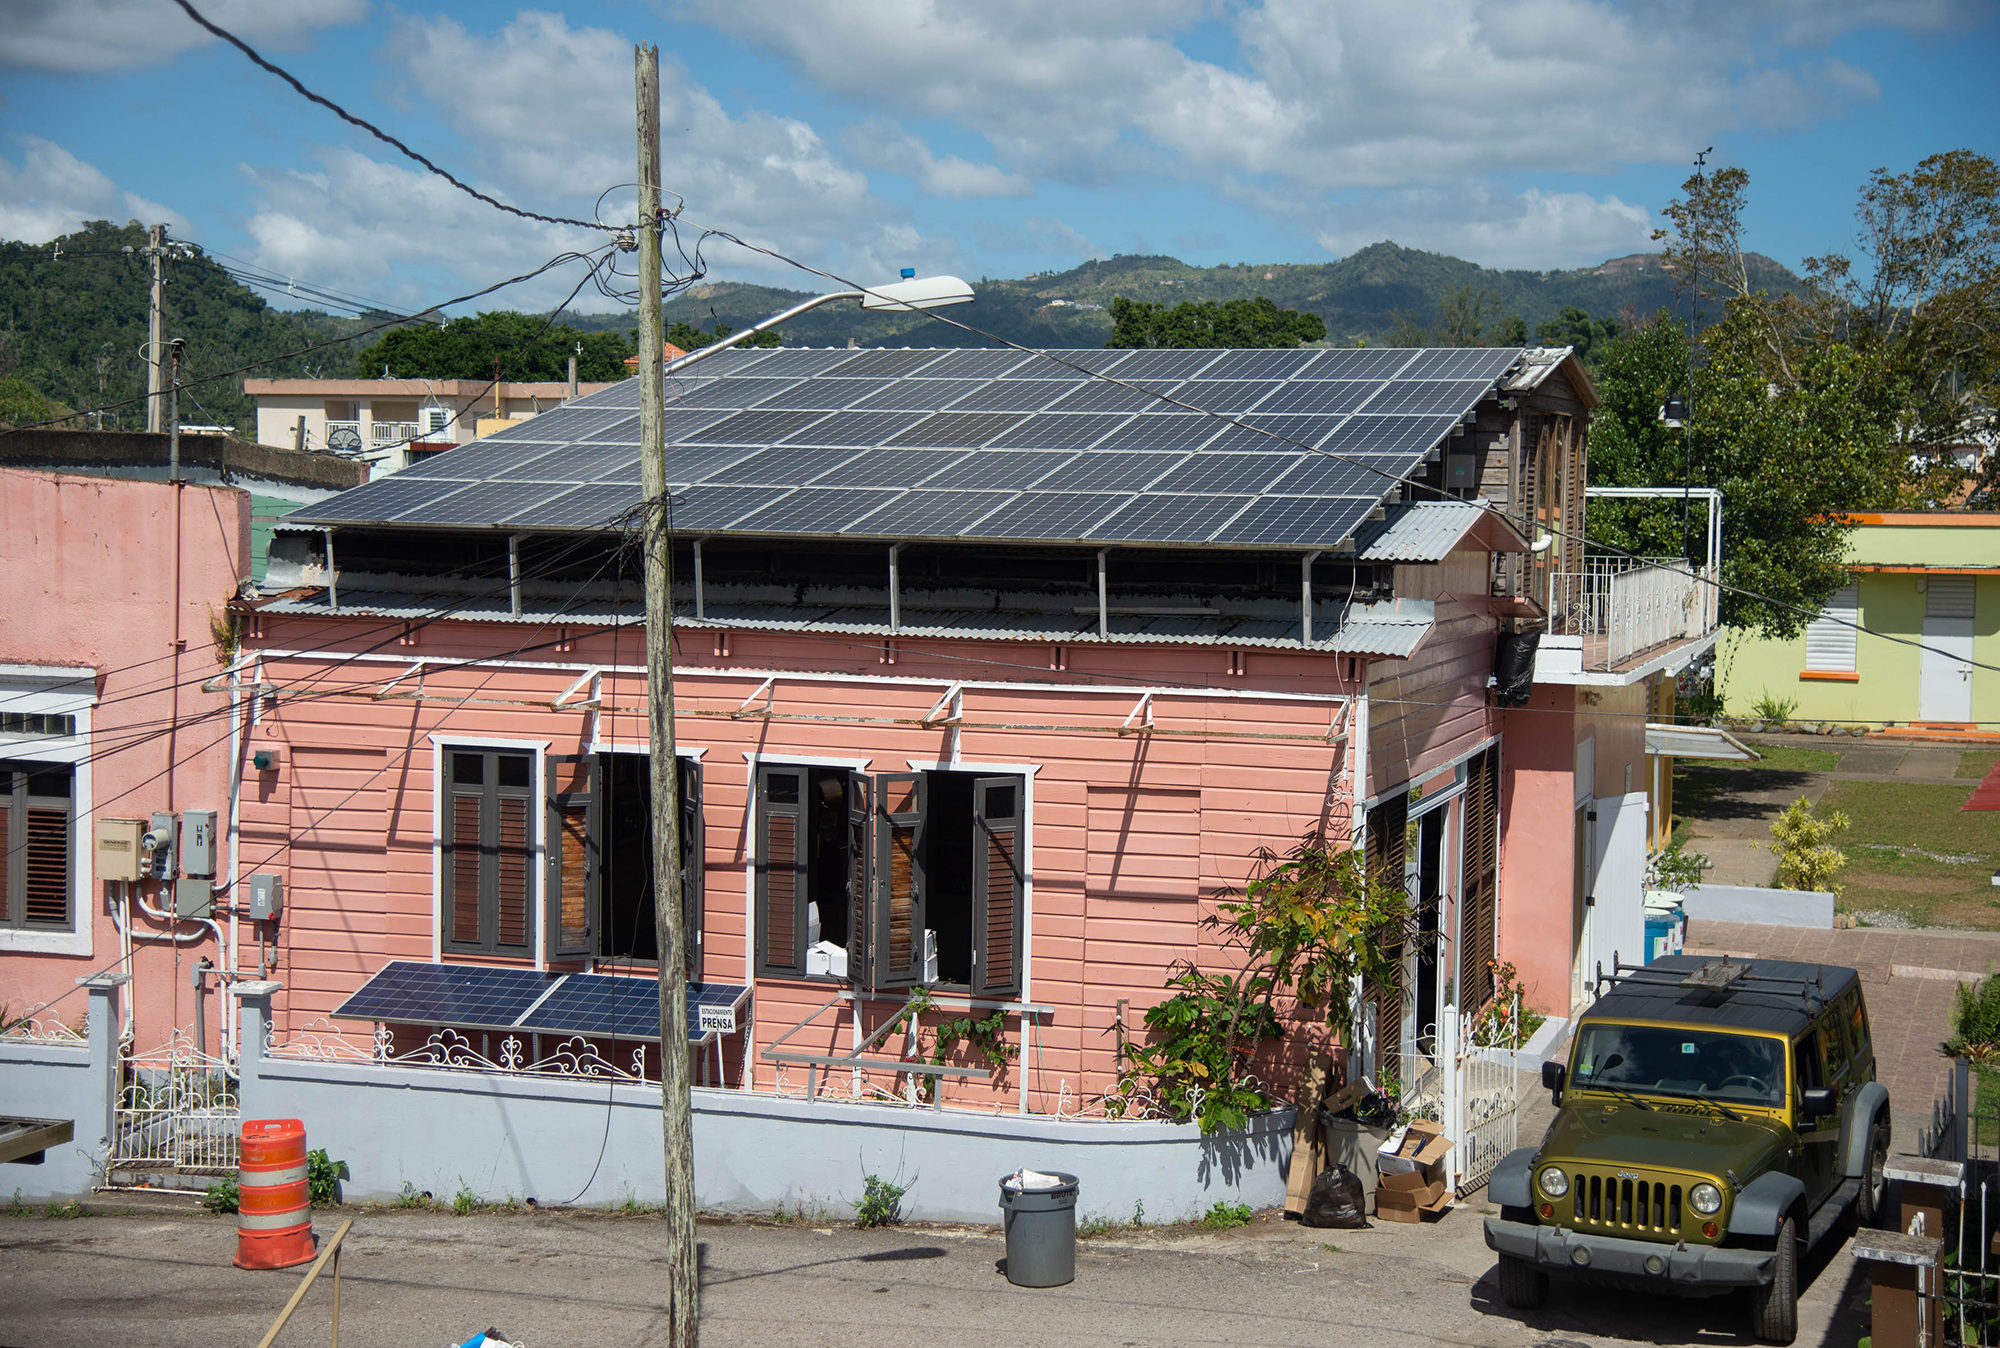 Casa Pueblo's solar array. Photo by Valerie Welch